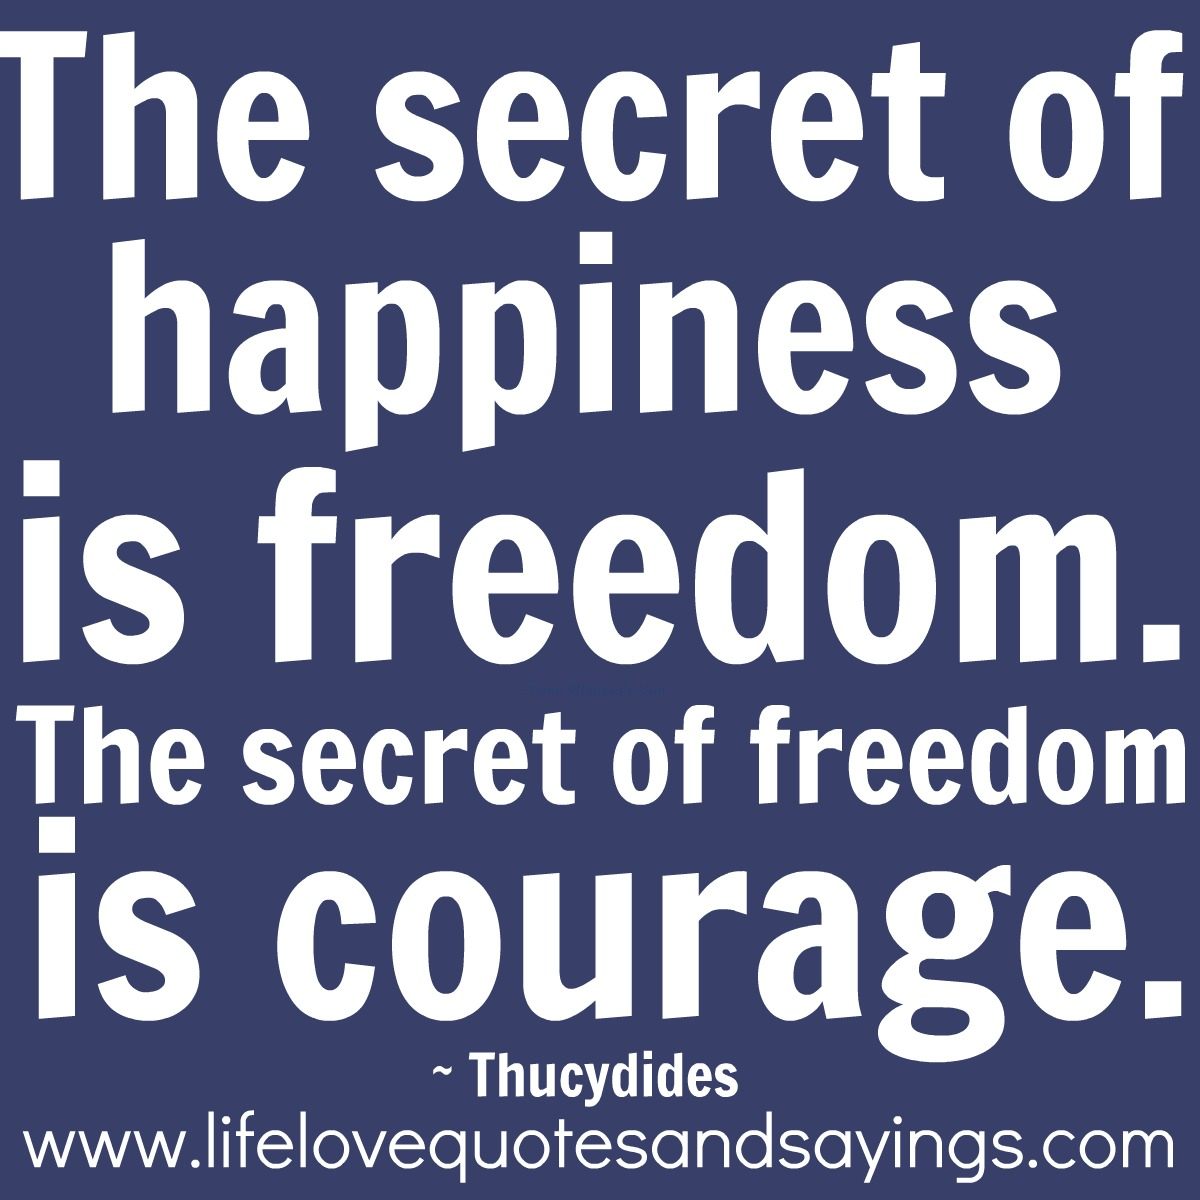 Life Without Freedom Quotes: How Do We Reach Life Freedom From Gambling Addiction